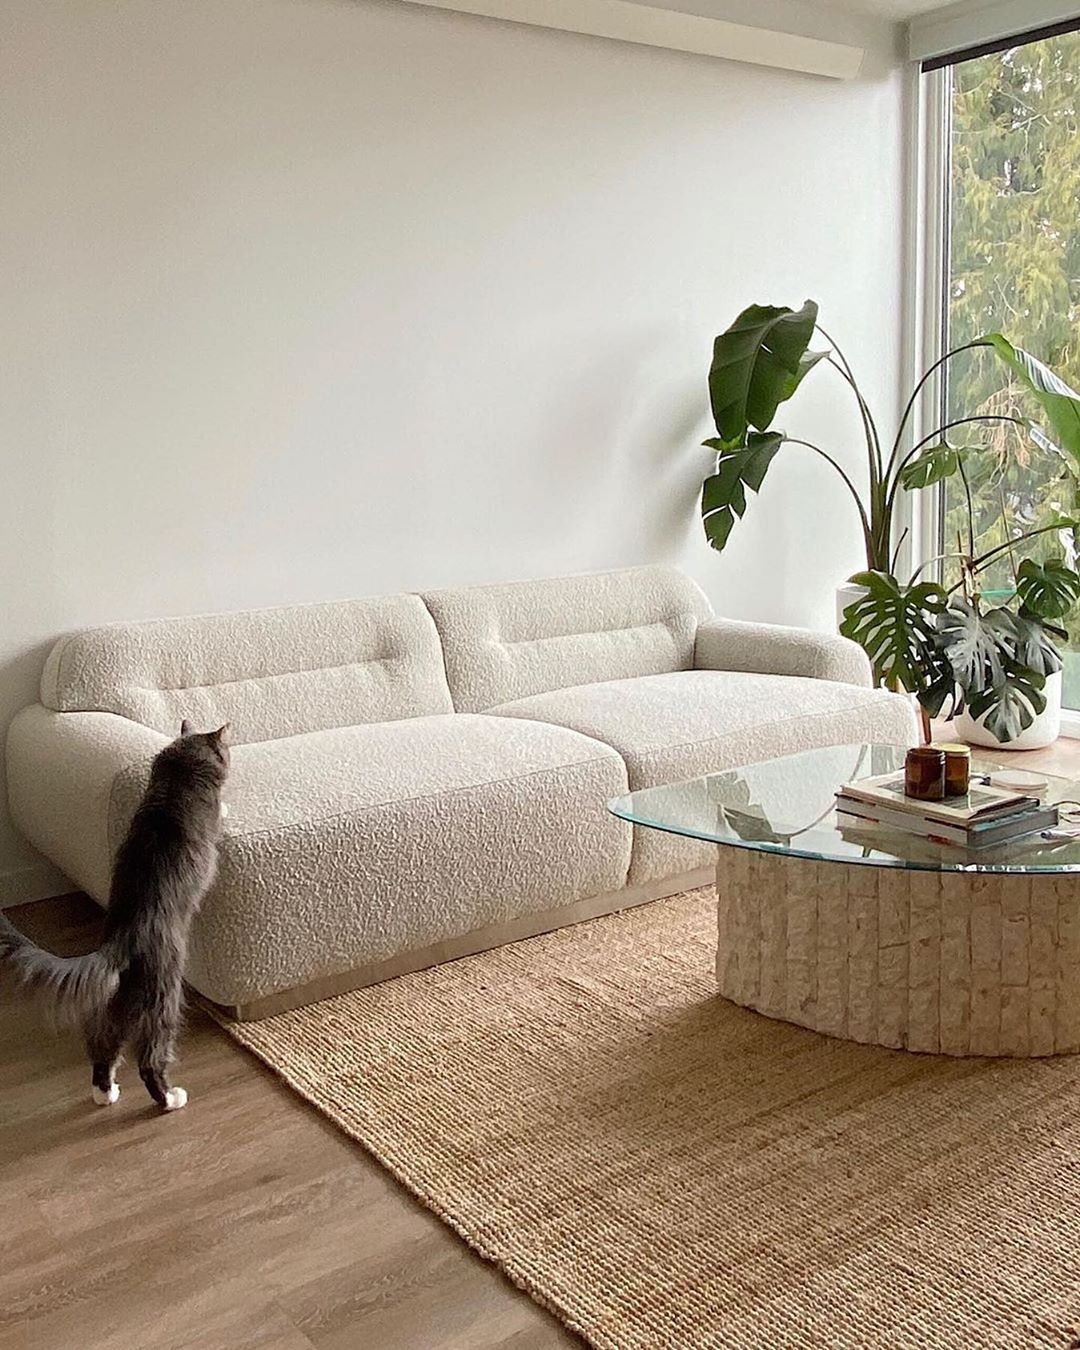 The Good Trade On Instagram Looking For The Purr Fect Place To Curl Up Look No Further Our Favorite Sus Interior Aesthetic Room Decor Home Decor Inspiration Living room no couch